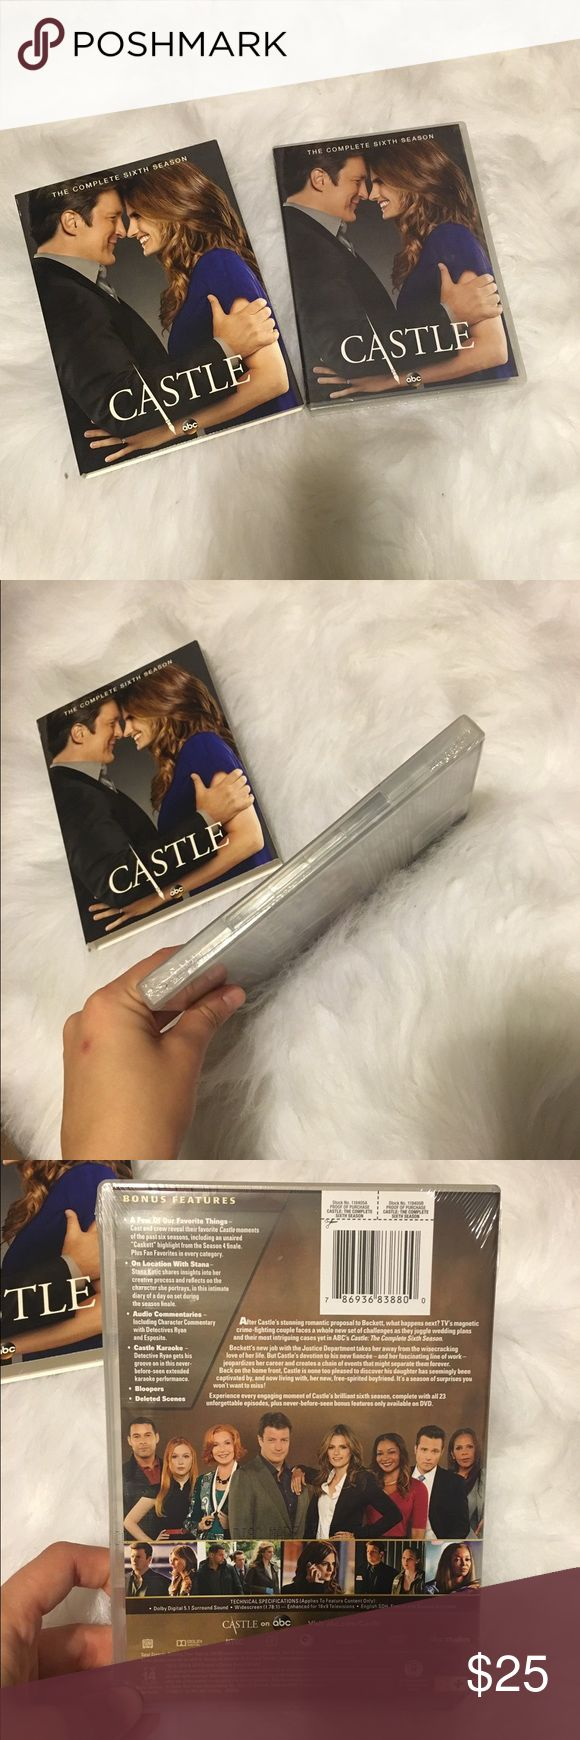 Castle Season 6 DVD BRAND NEW IN PACKAGING! Castle Season 6 DVD. New condition. Got it as a gift and I already have this season, so just trying to get it out of my way. **NO TRADES** Other